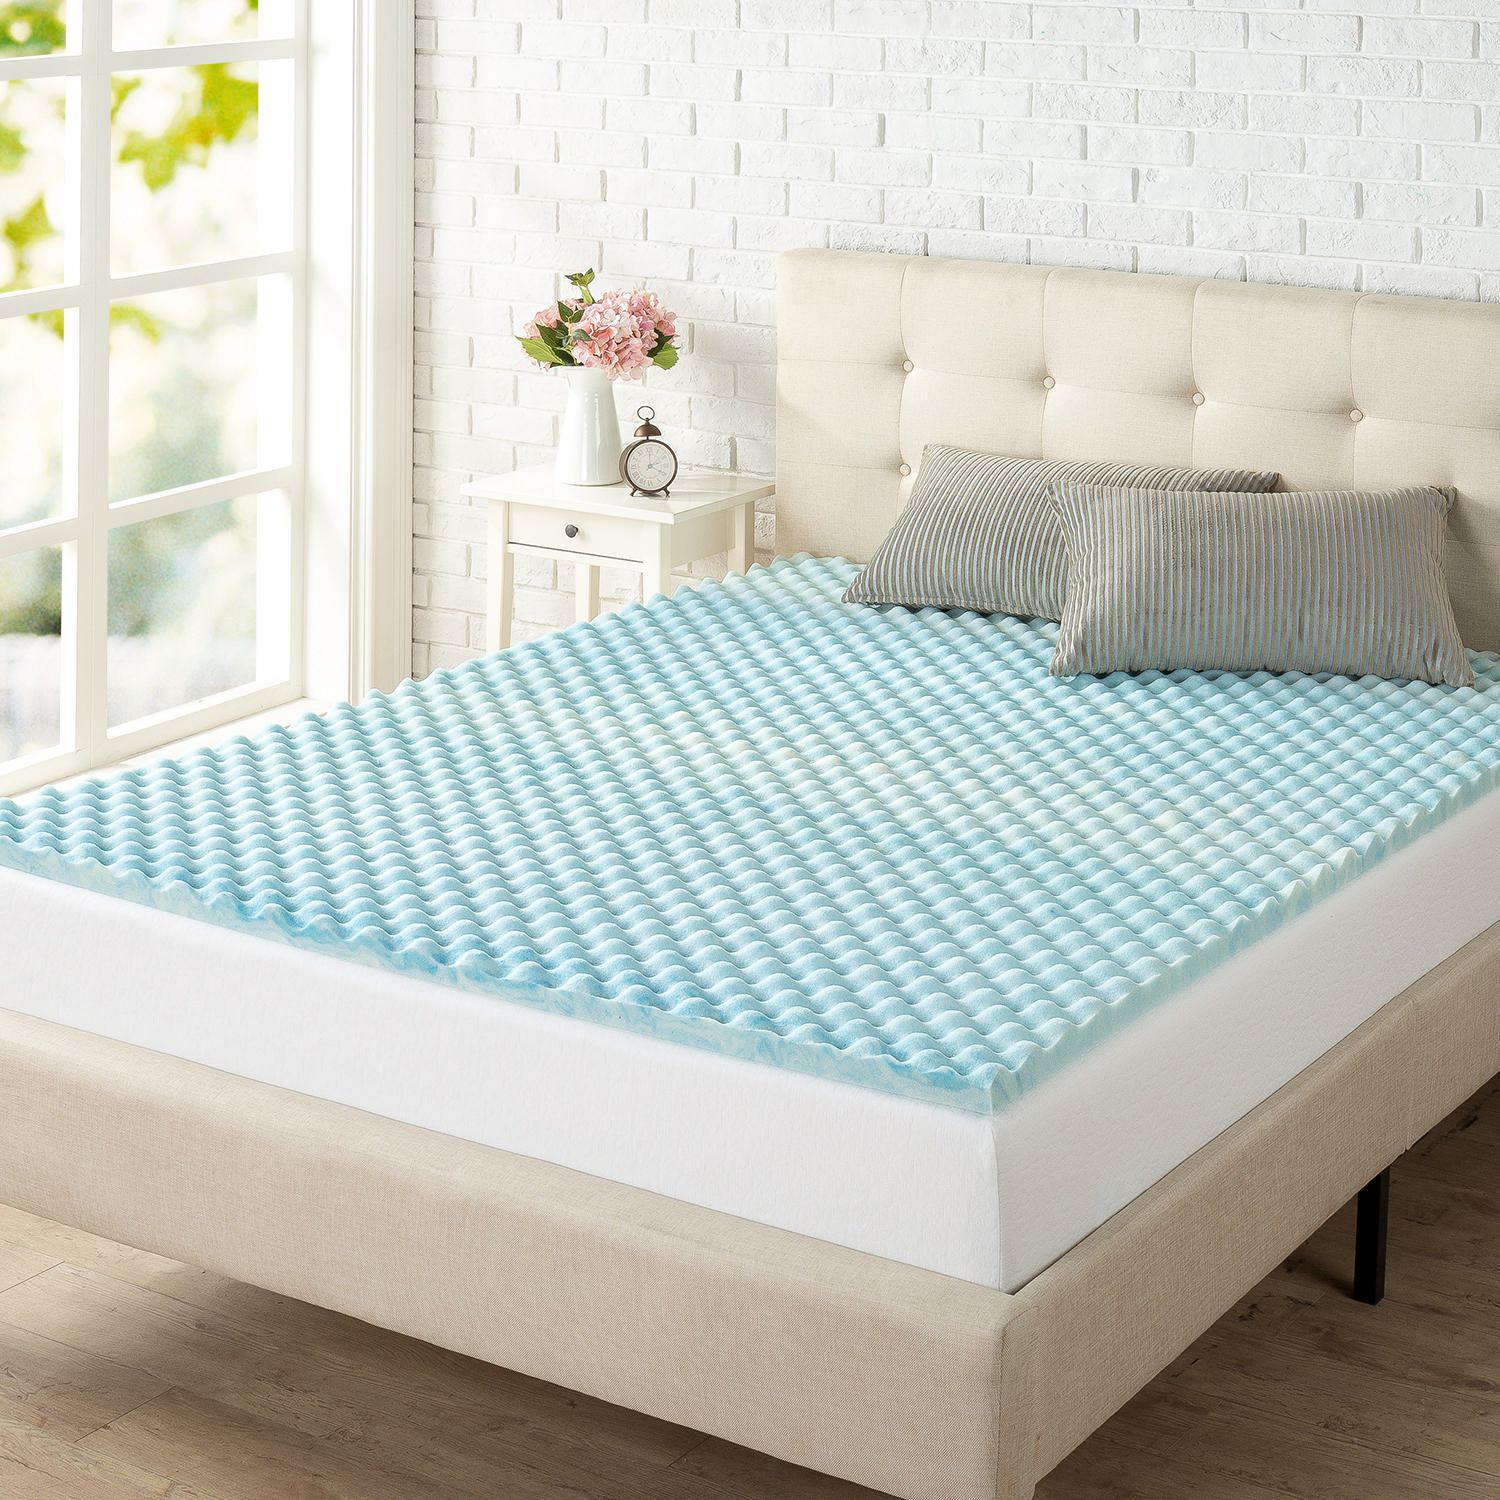 bedding and home image bamboo basics s maison mattress oxford beddington bed pad blanche bath protectors mills waterproof protector